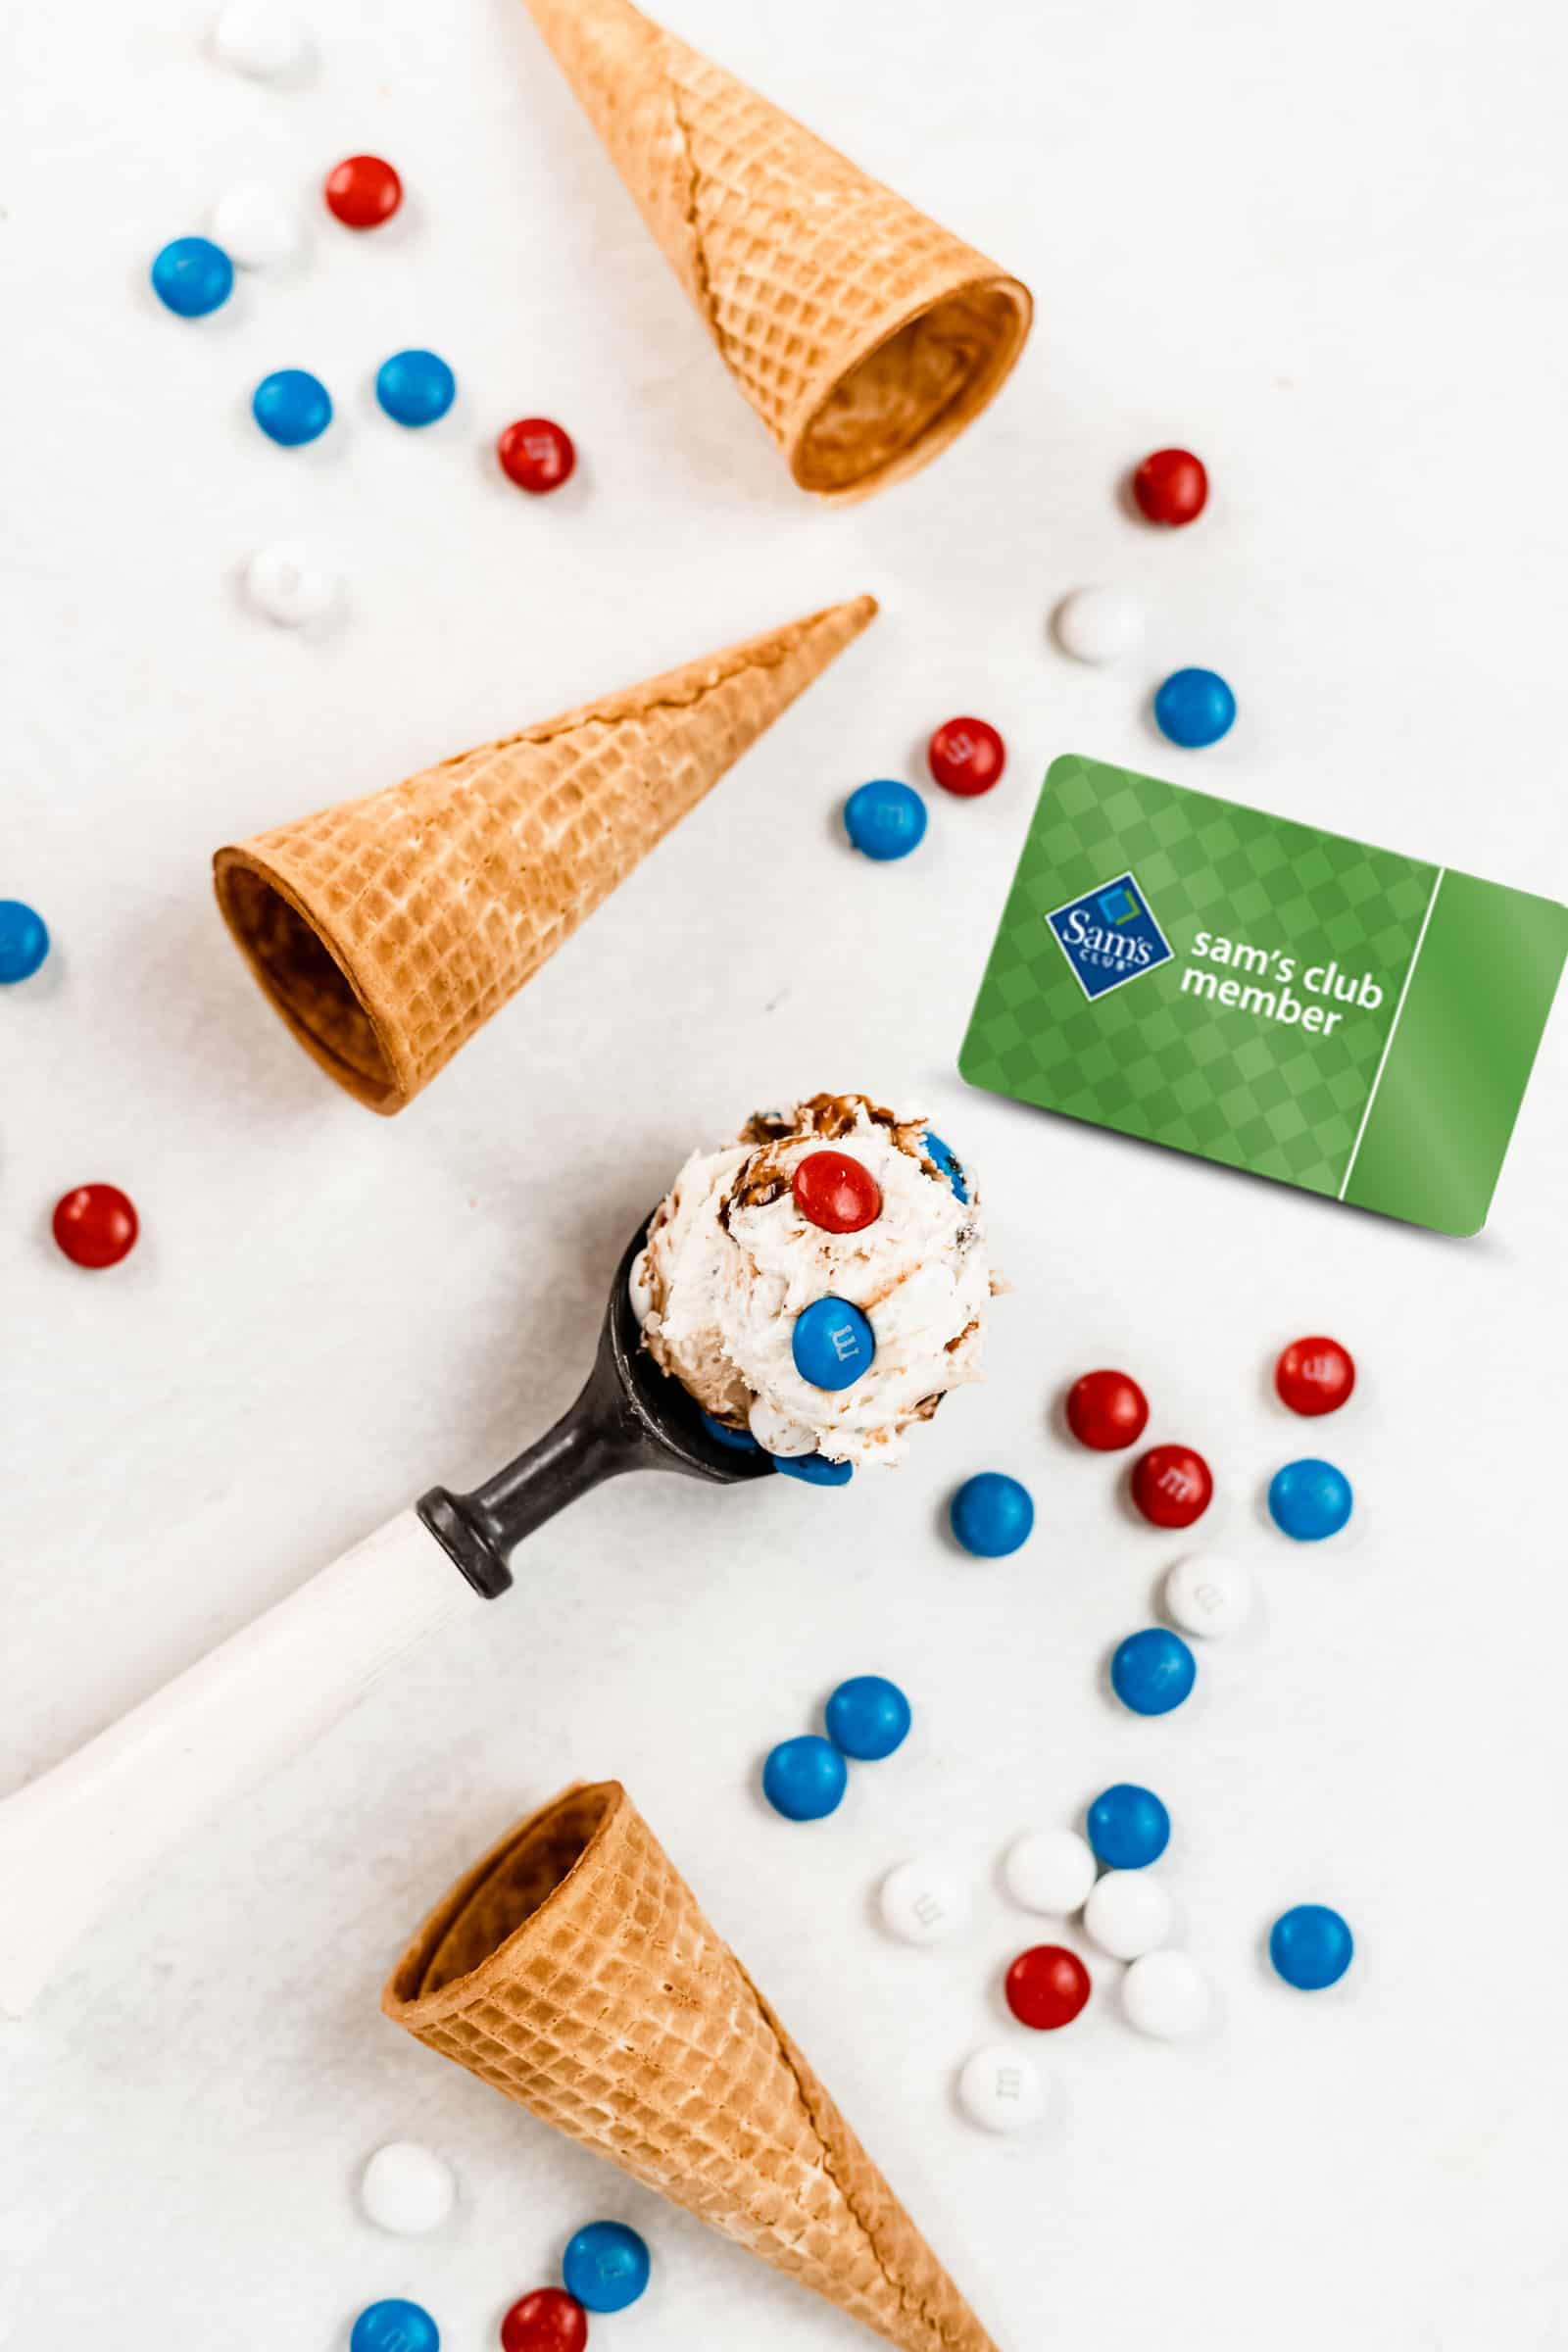 Creamy vanilla ice cream with fudgy chocolate swirls and milk chocolate M&M'S will be your new summer dessert! This No-Churn Fudge Ripple M&M Ice Cream is rich, smooth, and only takes a few minutes to prepare. #icecream #nochurnicecream #4thofjulyrecipe